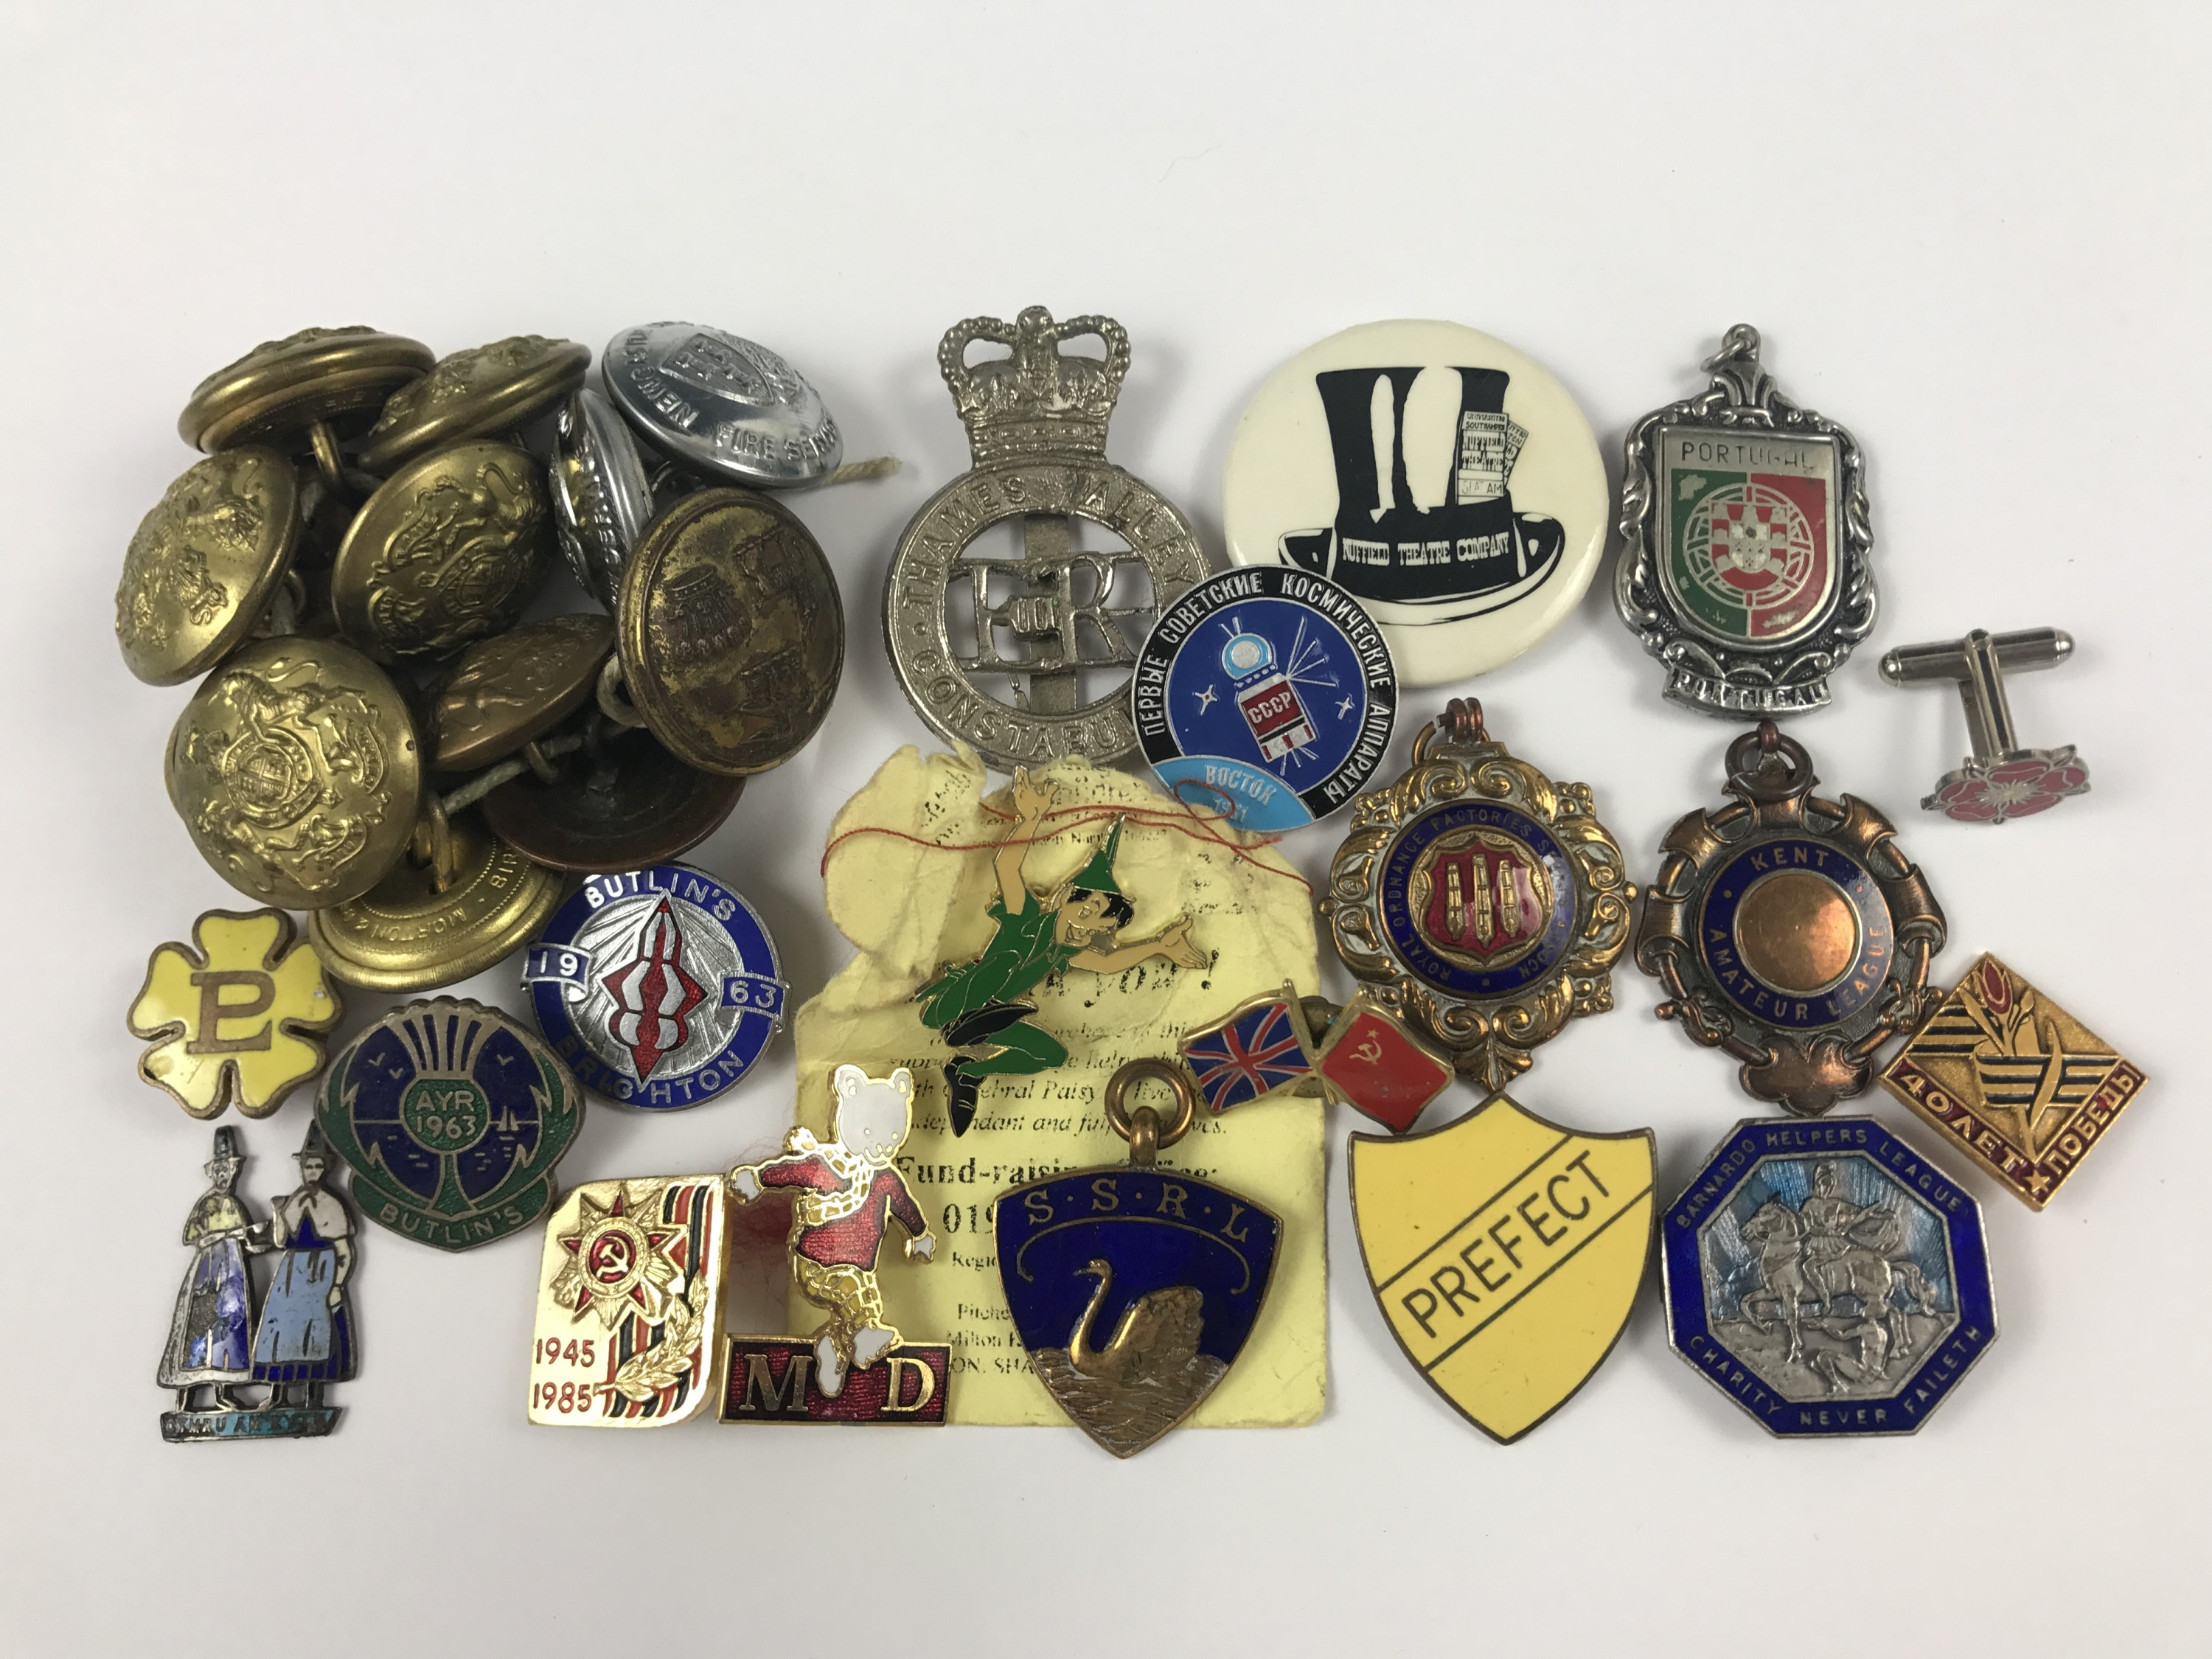 Lot 5 - Vintage enamelled buttons and badges including livery buttons